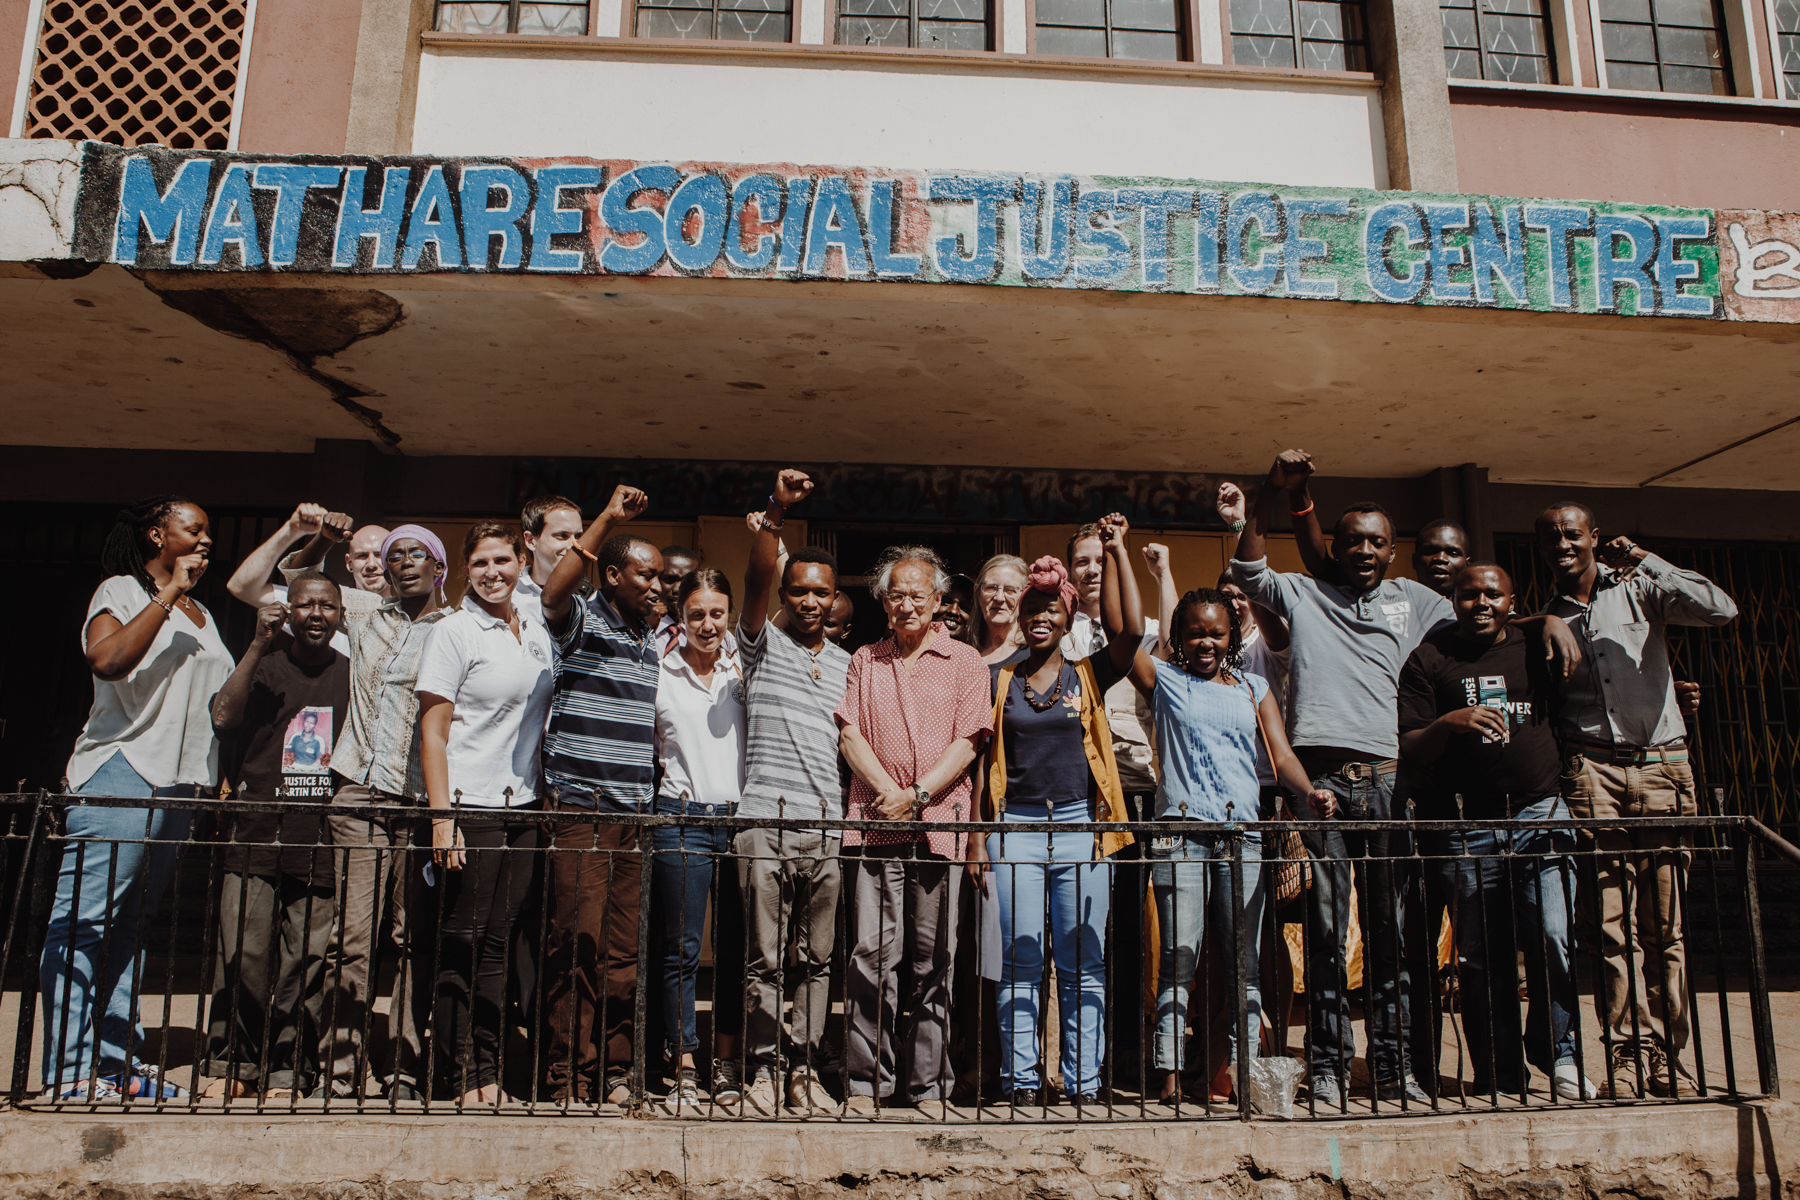 Mathare Social Justice Center